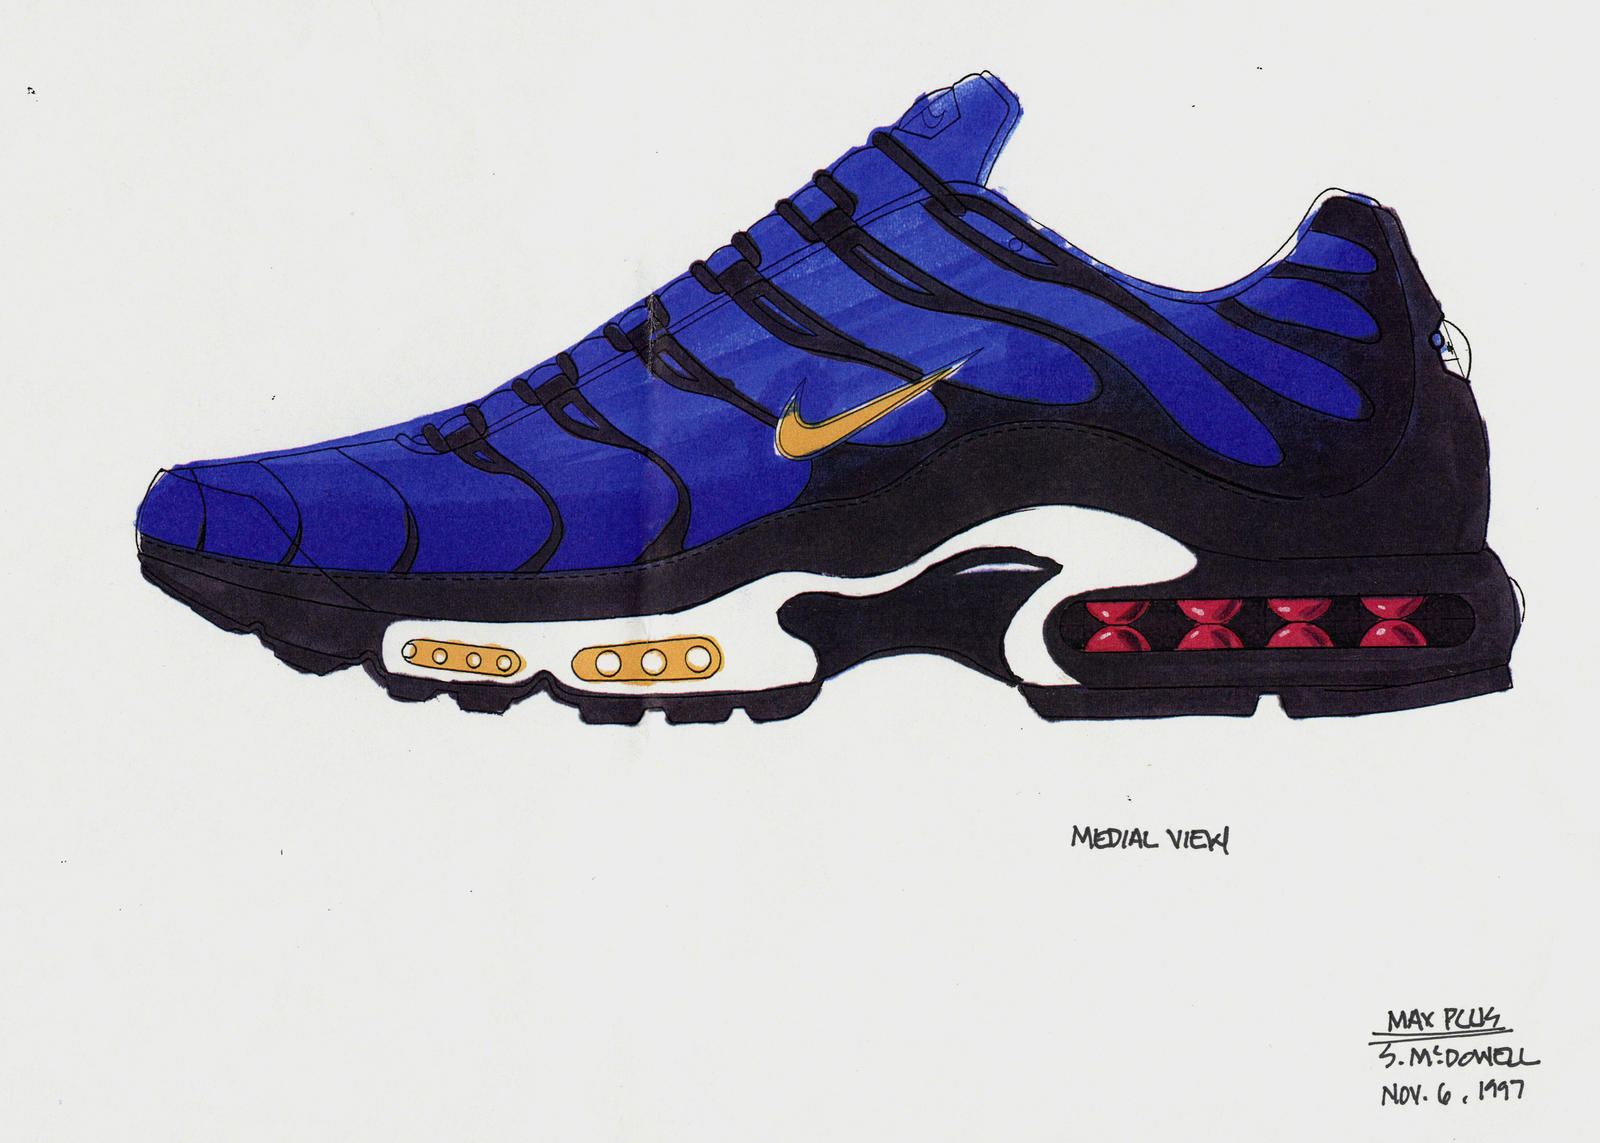 best value 4722b db2d2 Nike Air Max Plus TN History - Nike News